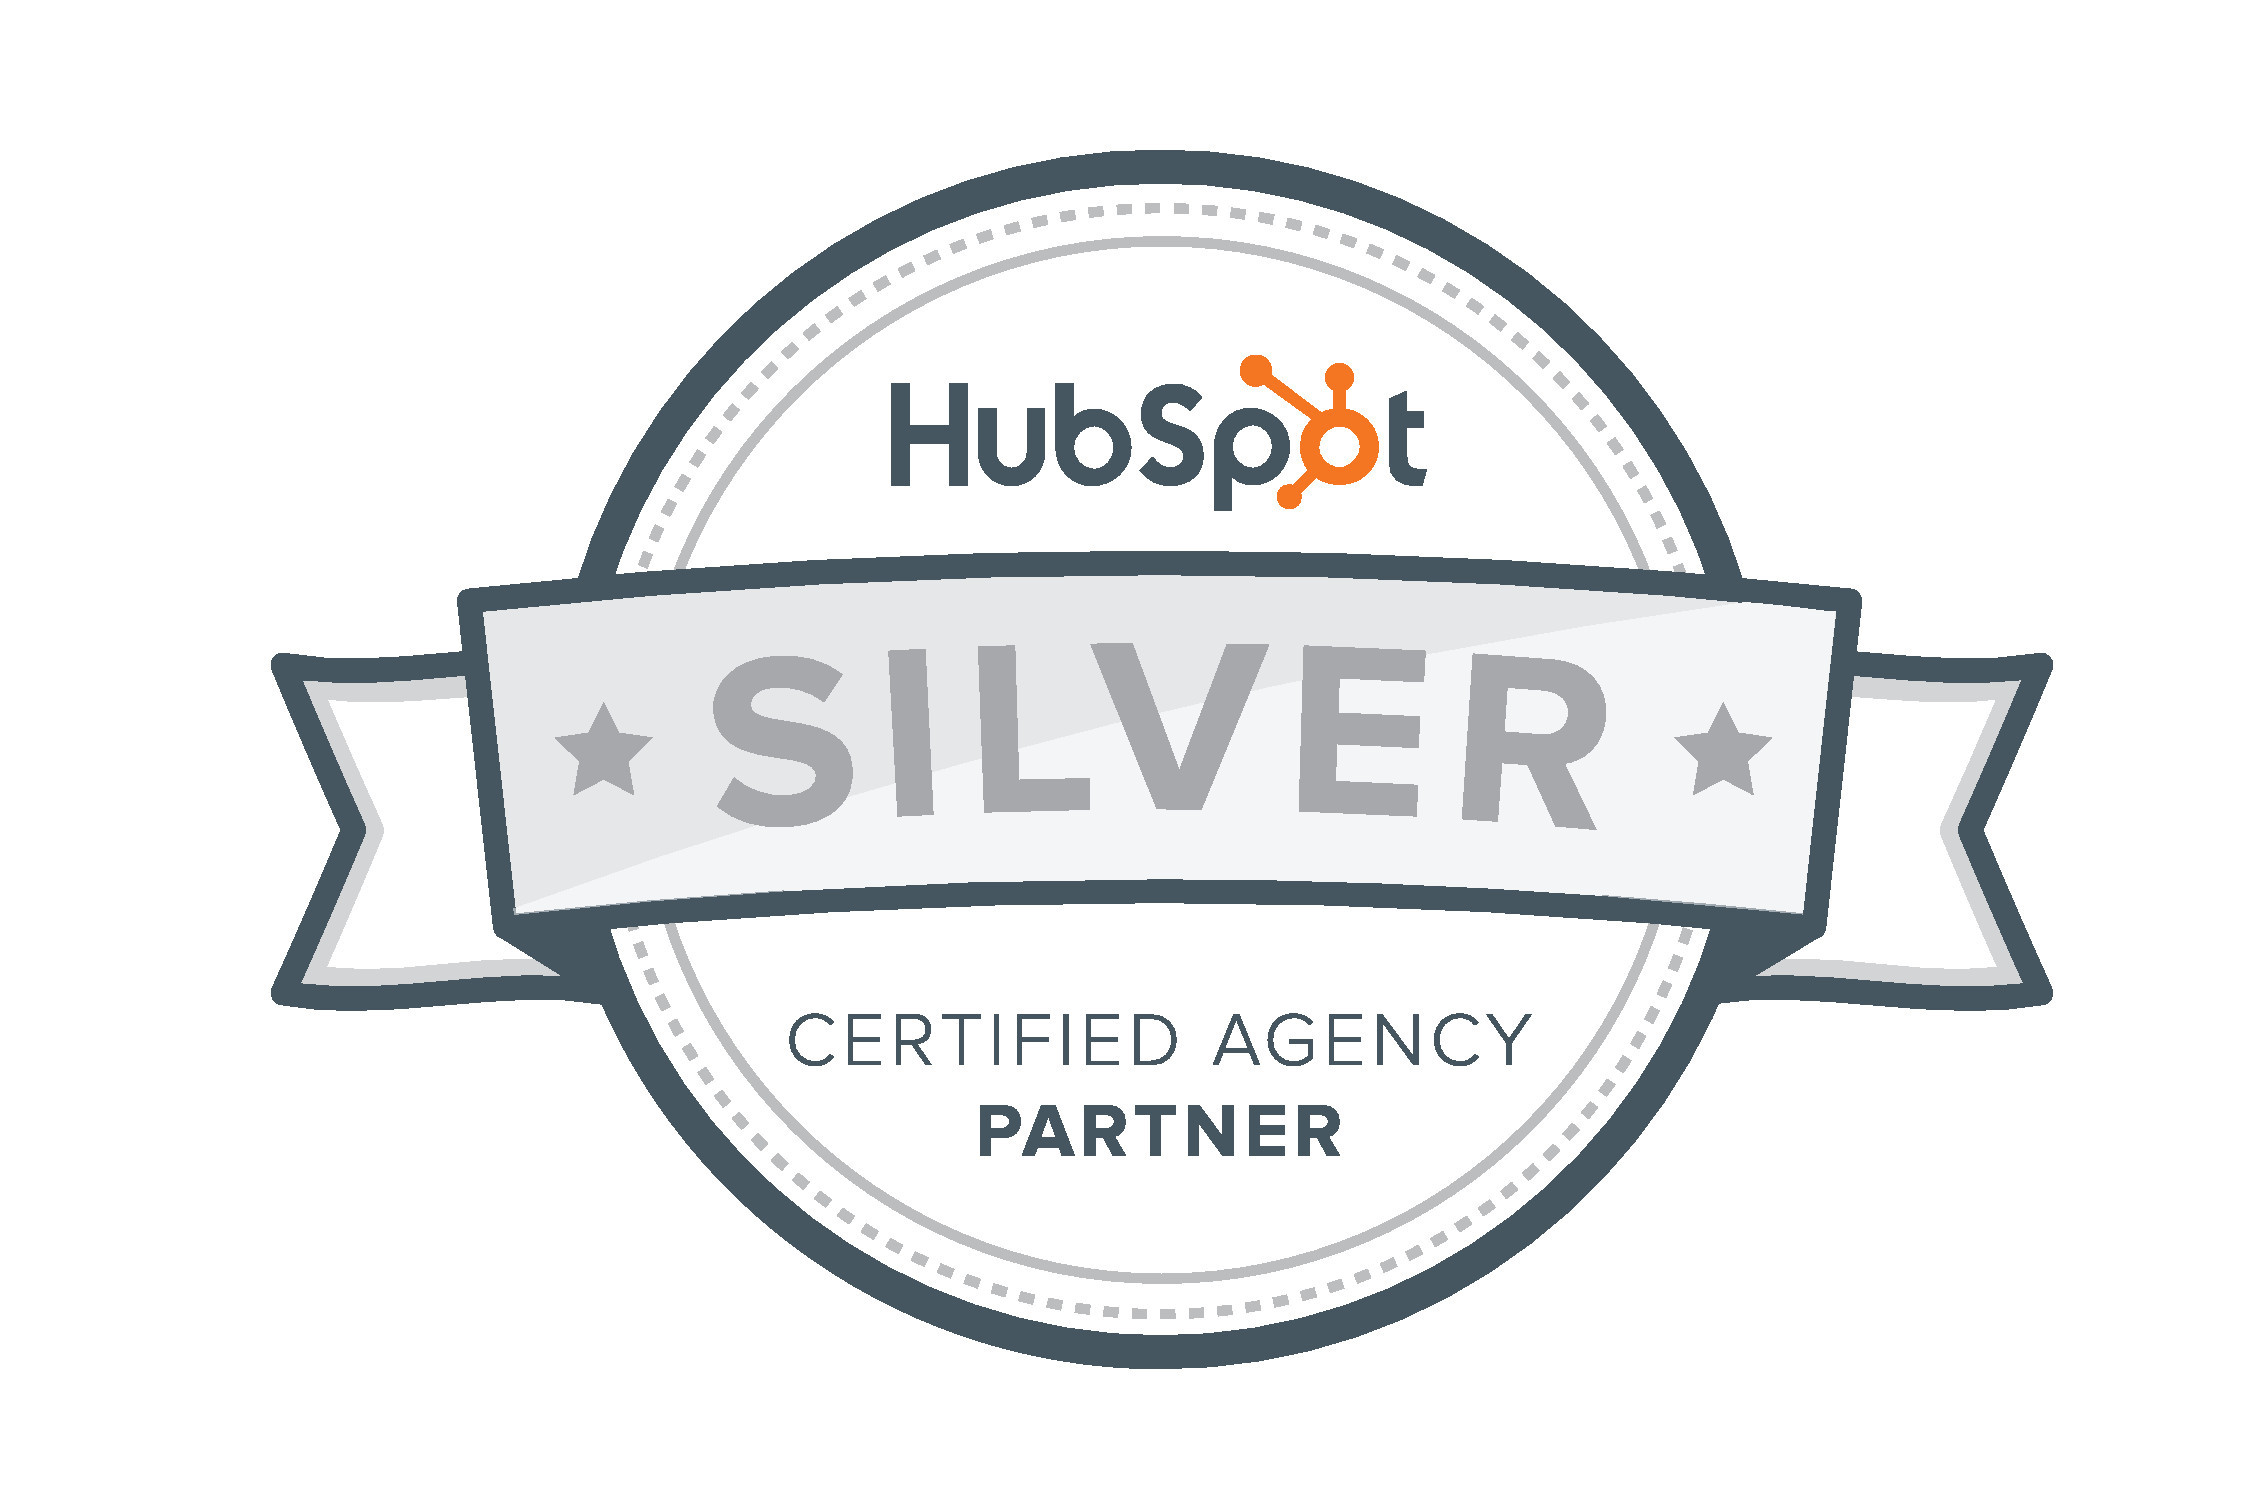 Hubspot_Silver_Partner_Badge_no_background.png